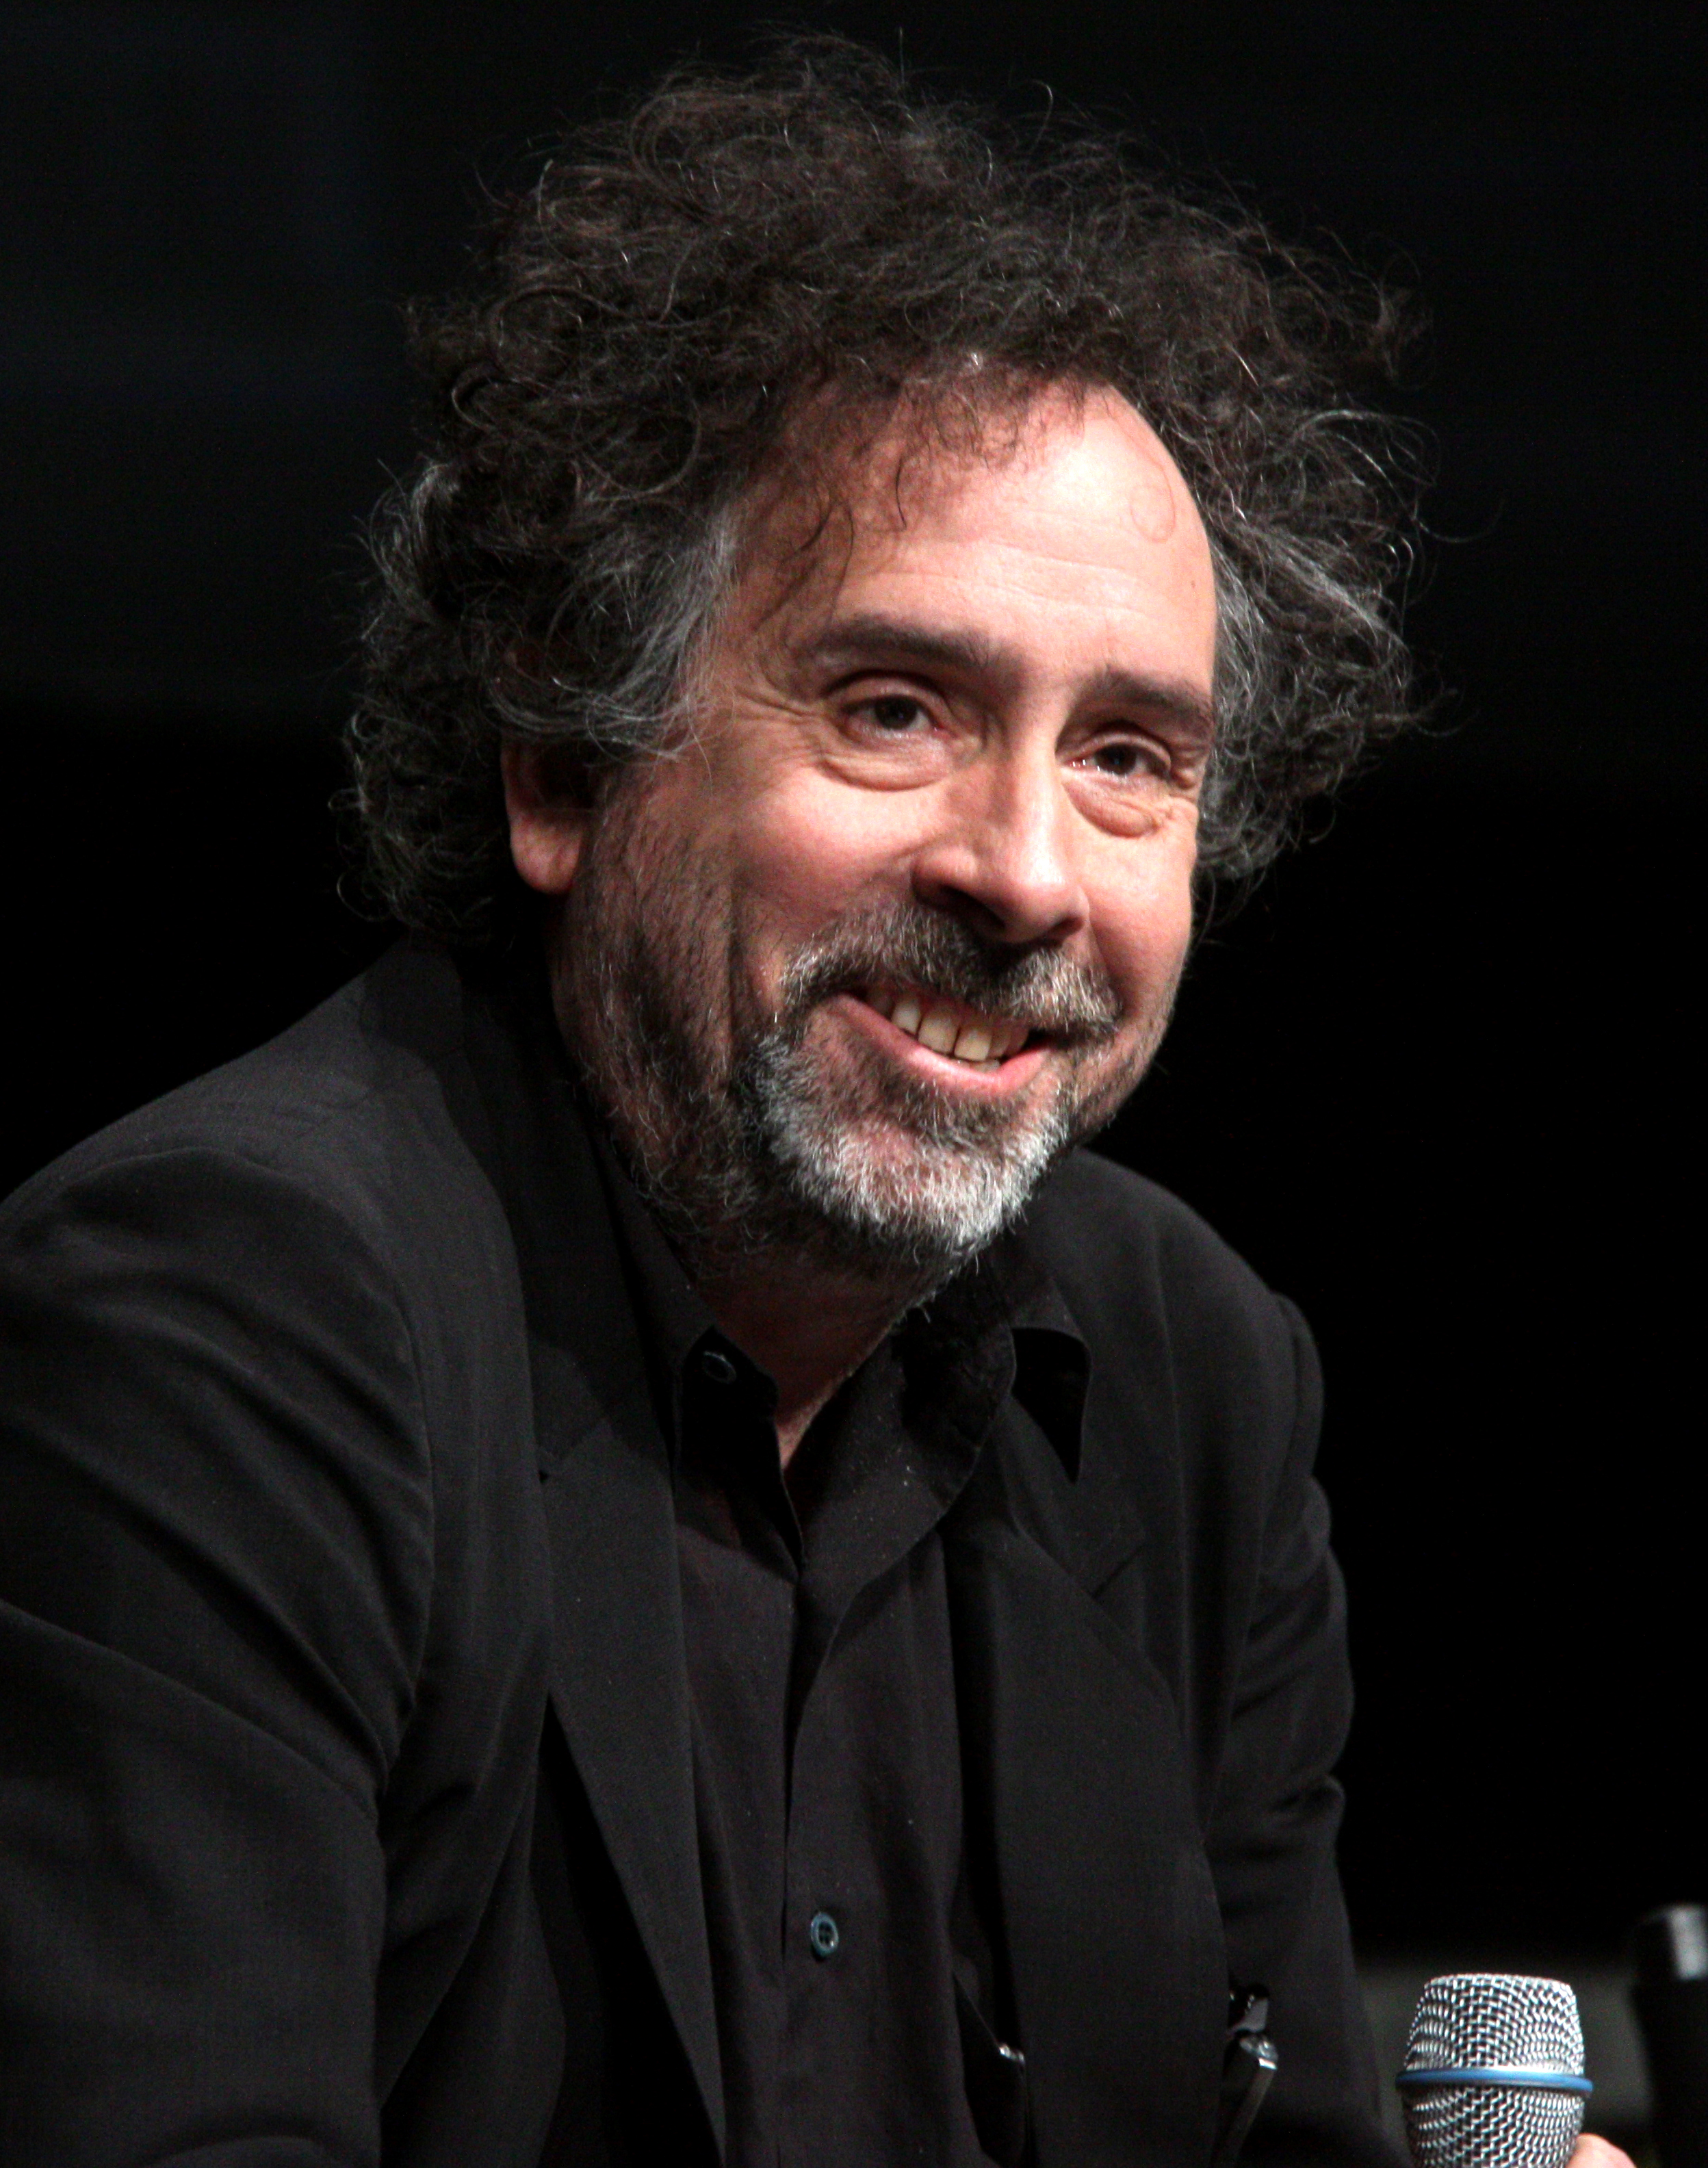 The 48-year old son of father Bill Burton and mother Jean Burton, 182 cm tall Tim Burton in 2017 photo